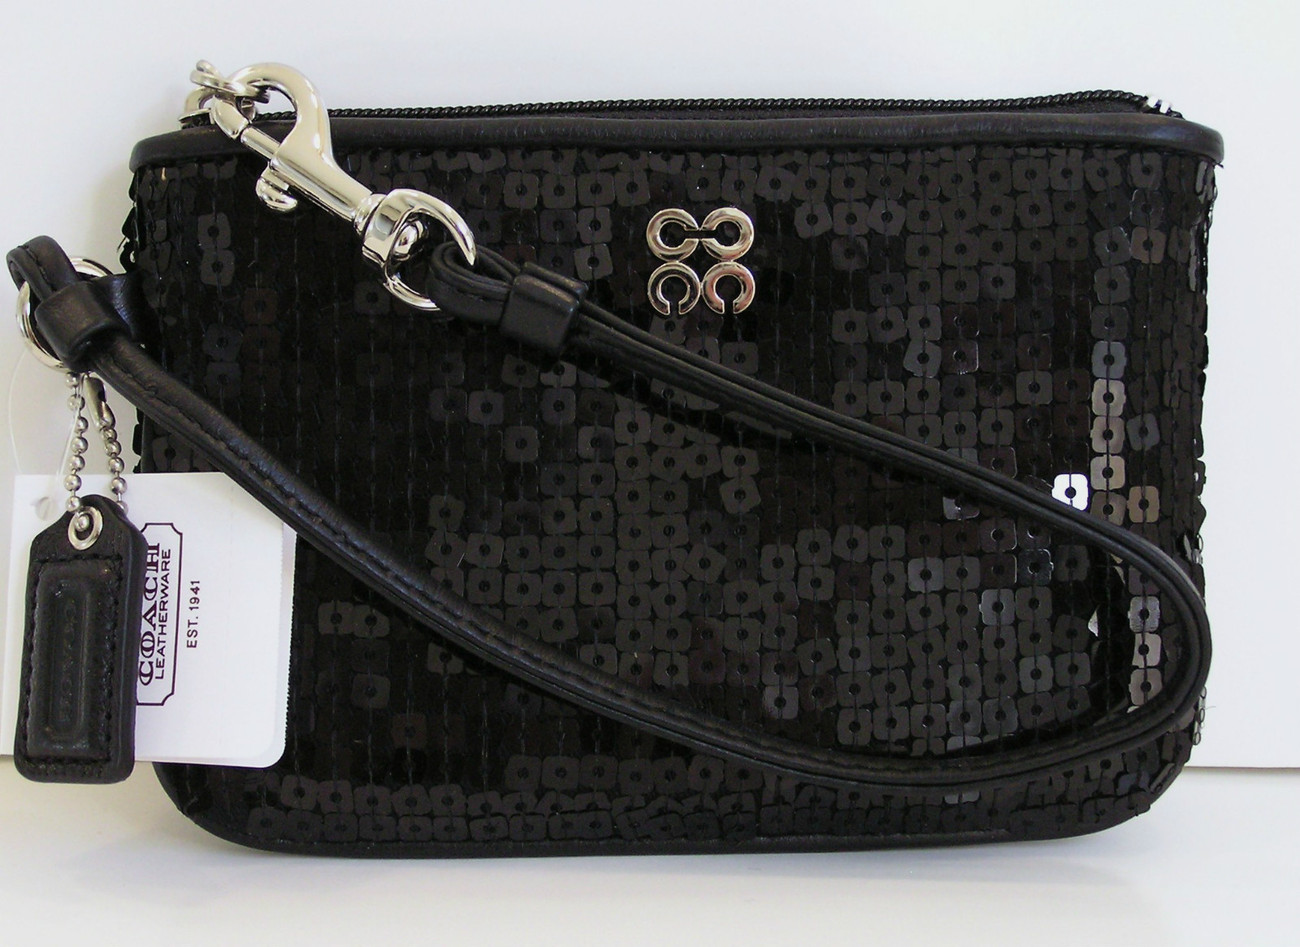 Coach OCCASION BLACK SEQUIN Wristlet Bag 46563 NWT